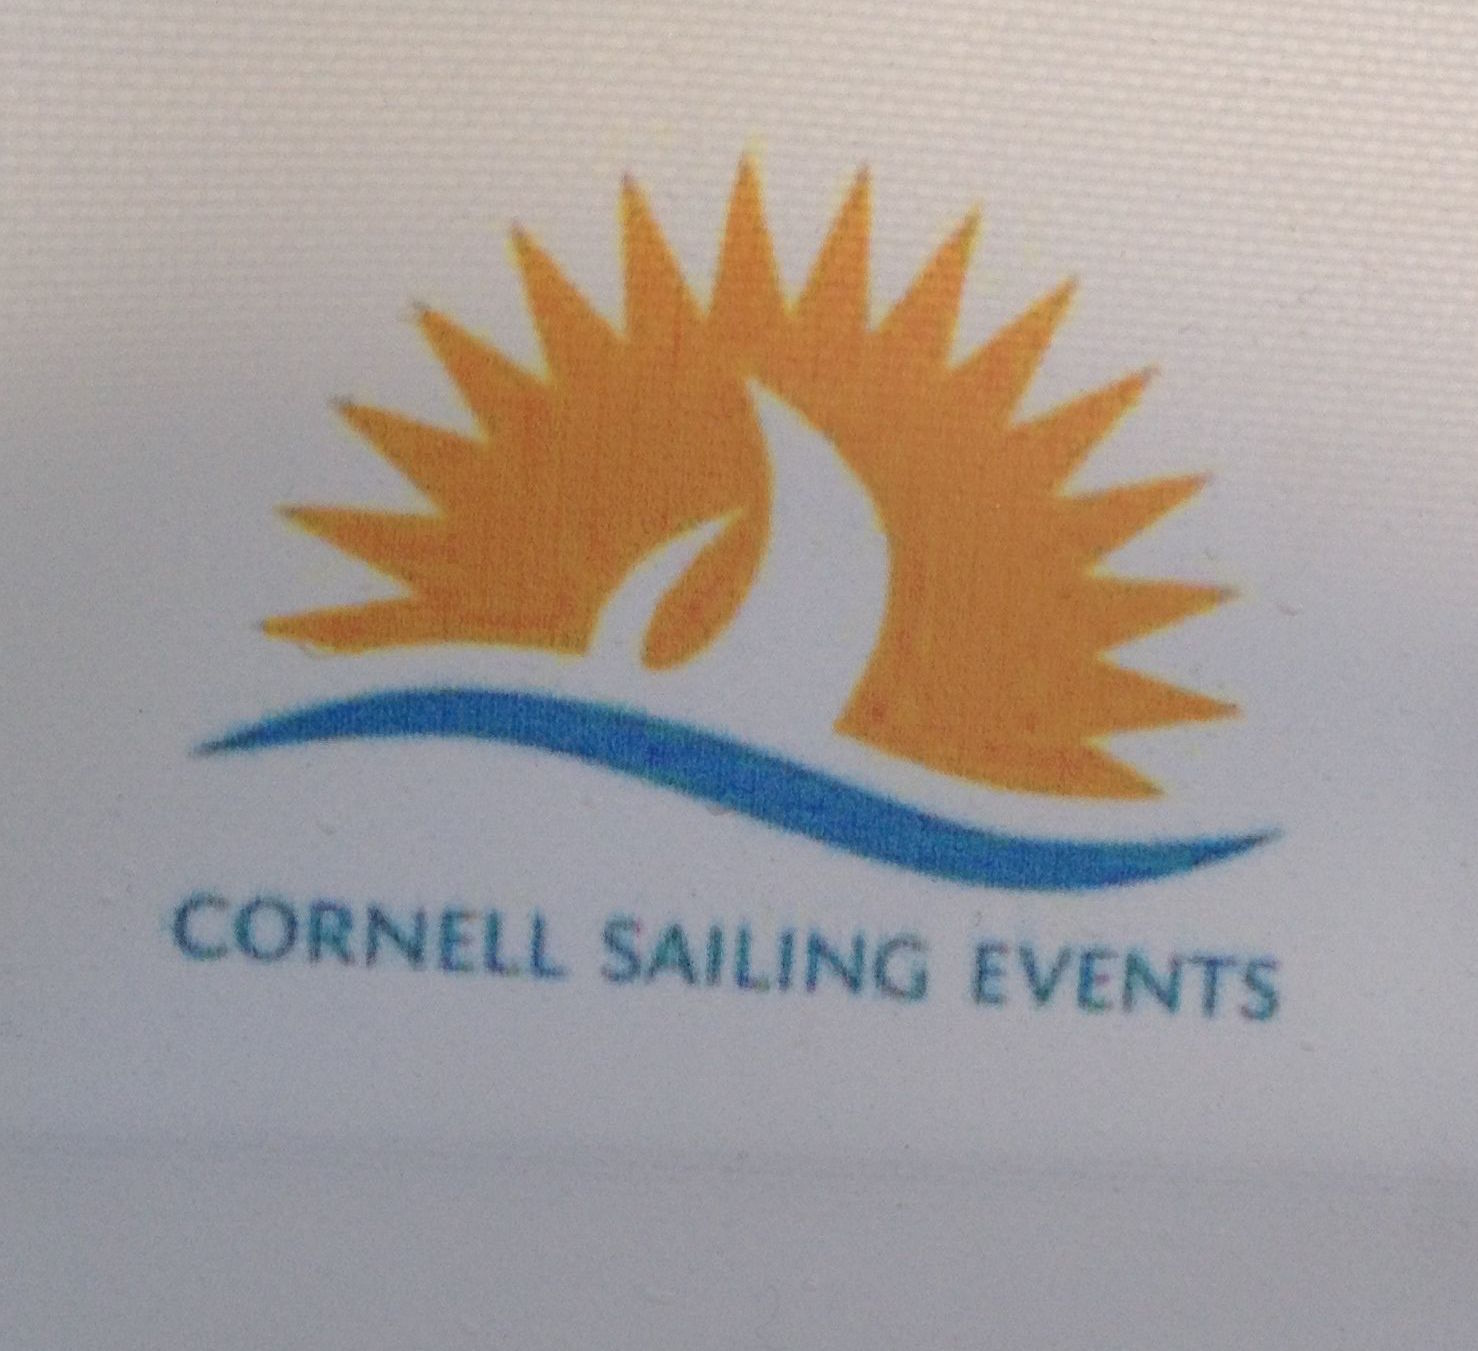 75-cornell-sailing-events-is-the-organizer-of-the-blue-planet-odyssey